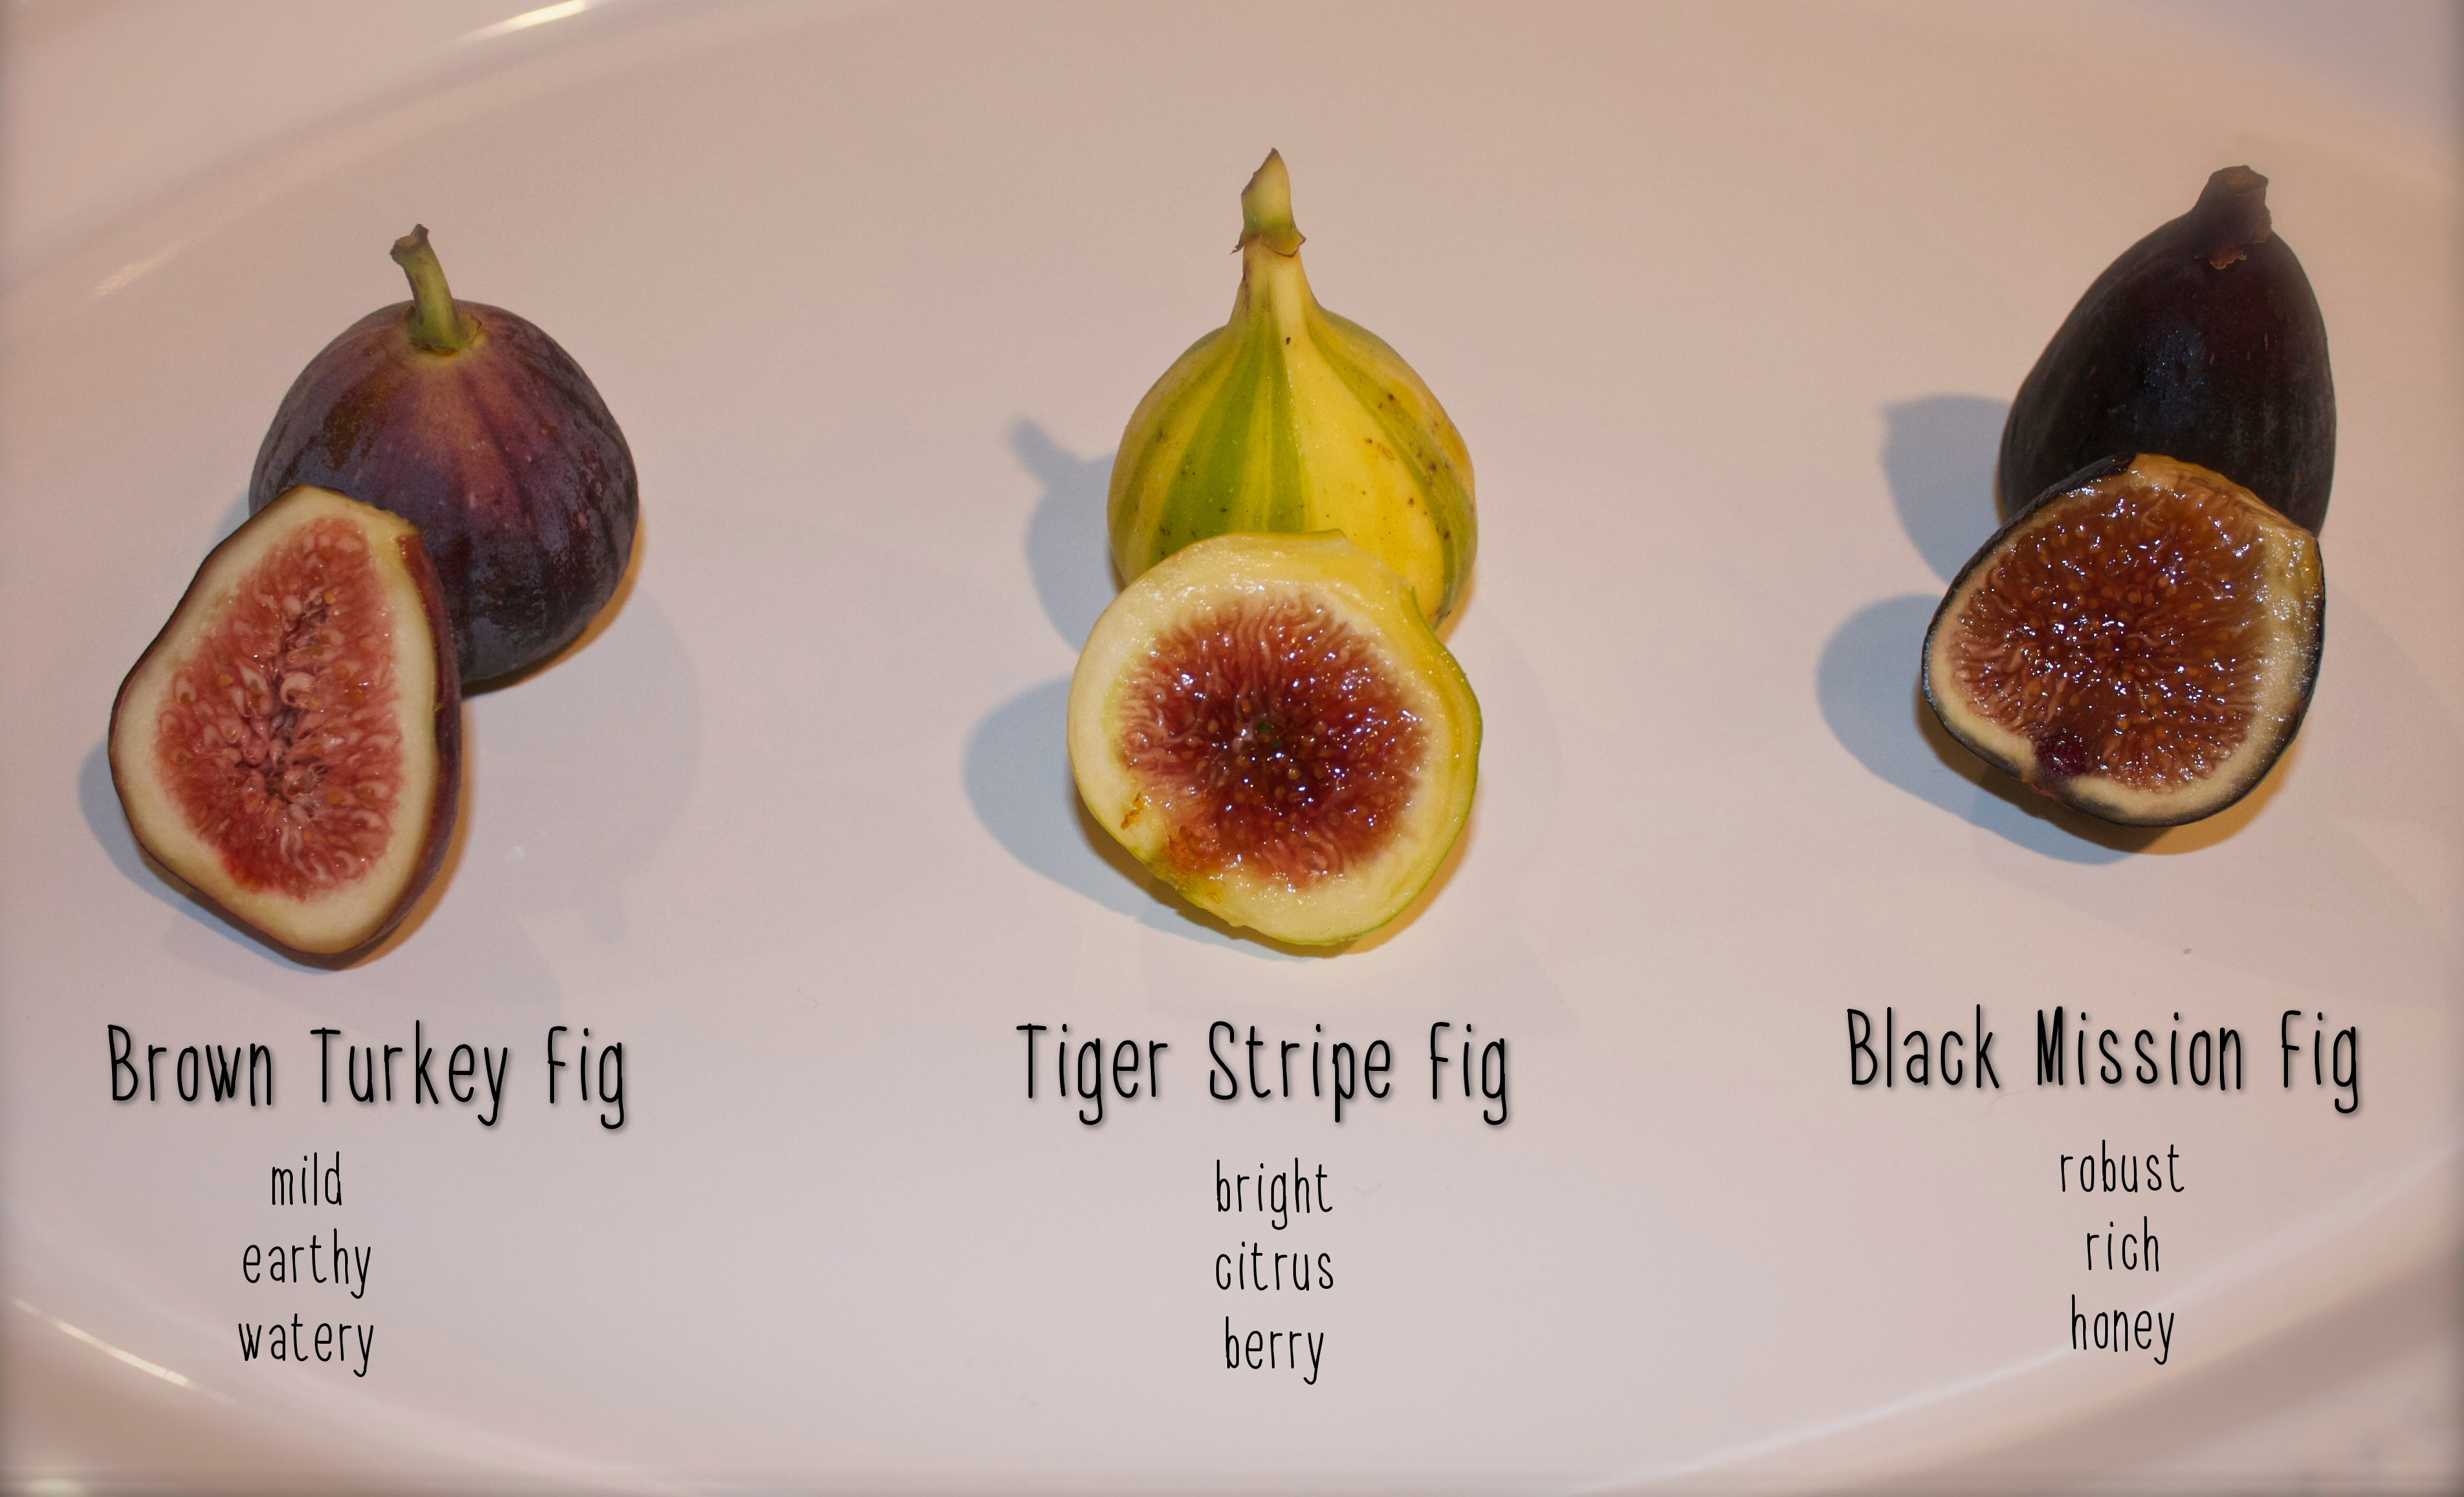 how to make alcohol from figs